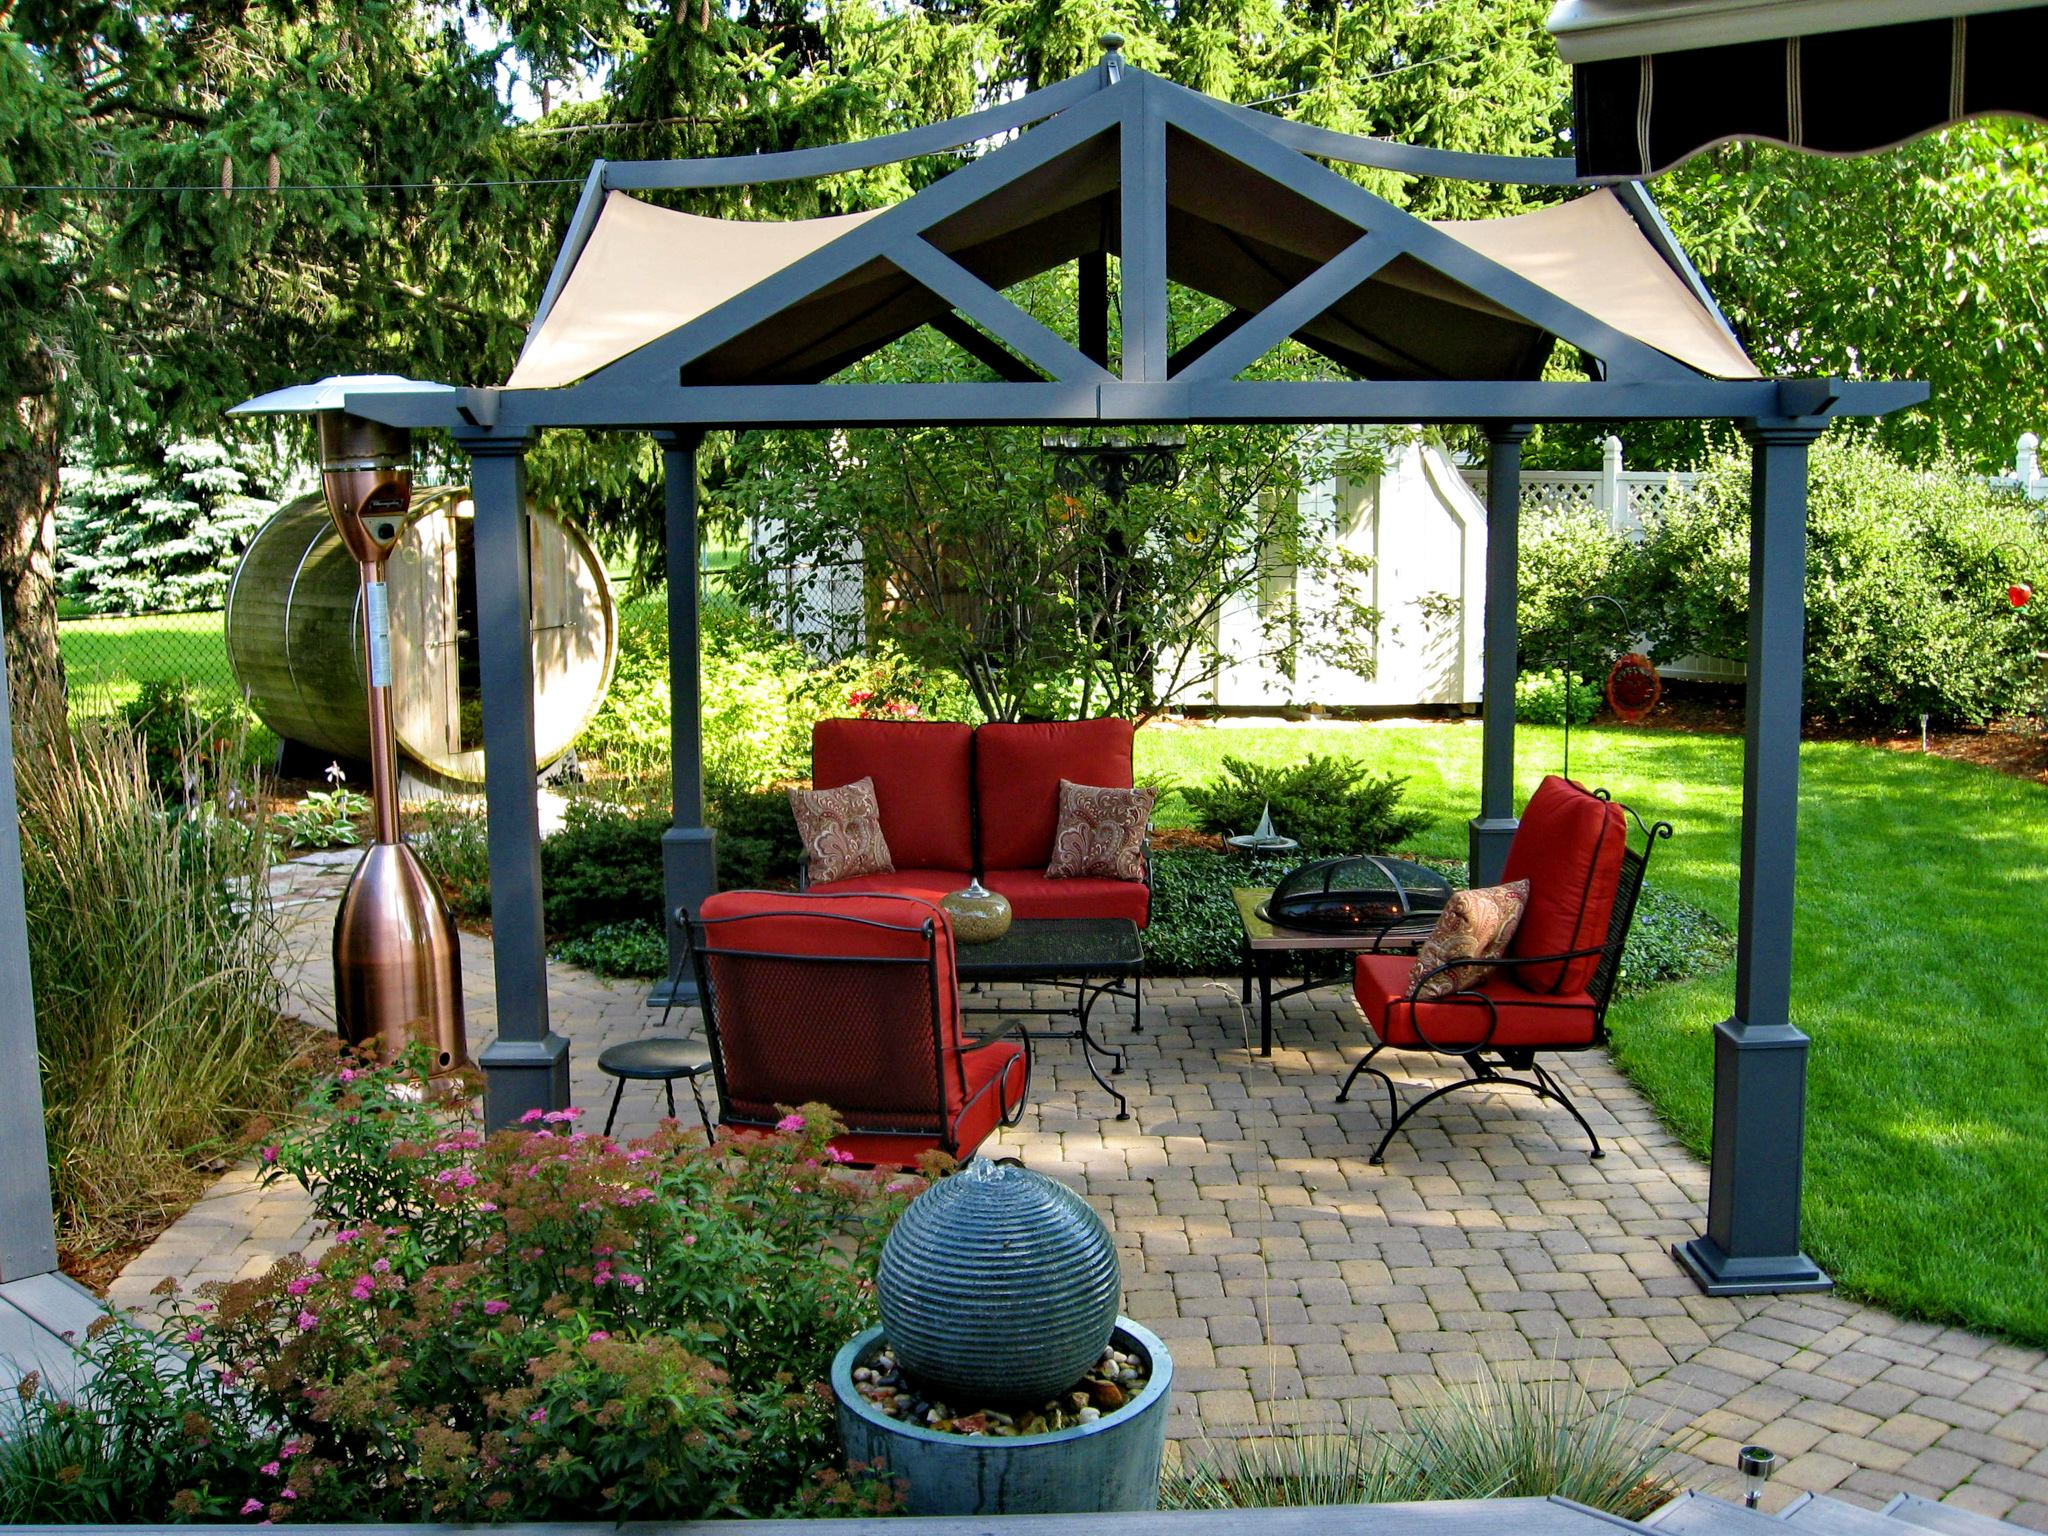 Patio Design Ideas | Hardscape Design Ideas | Residential & Commercial